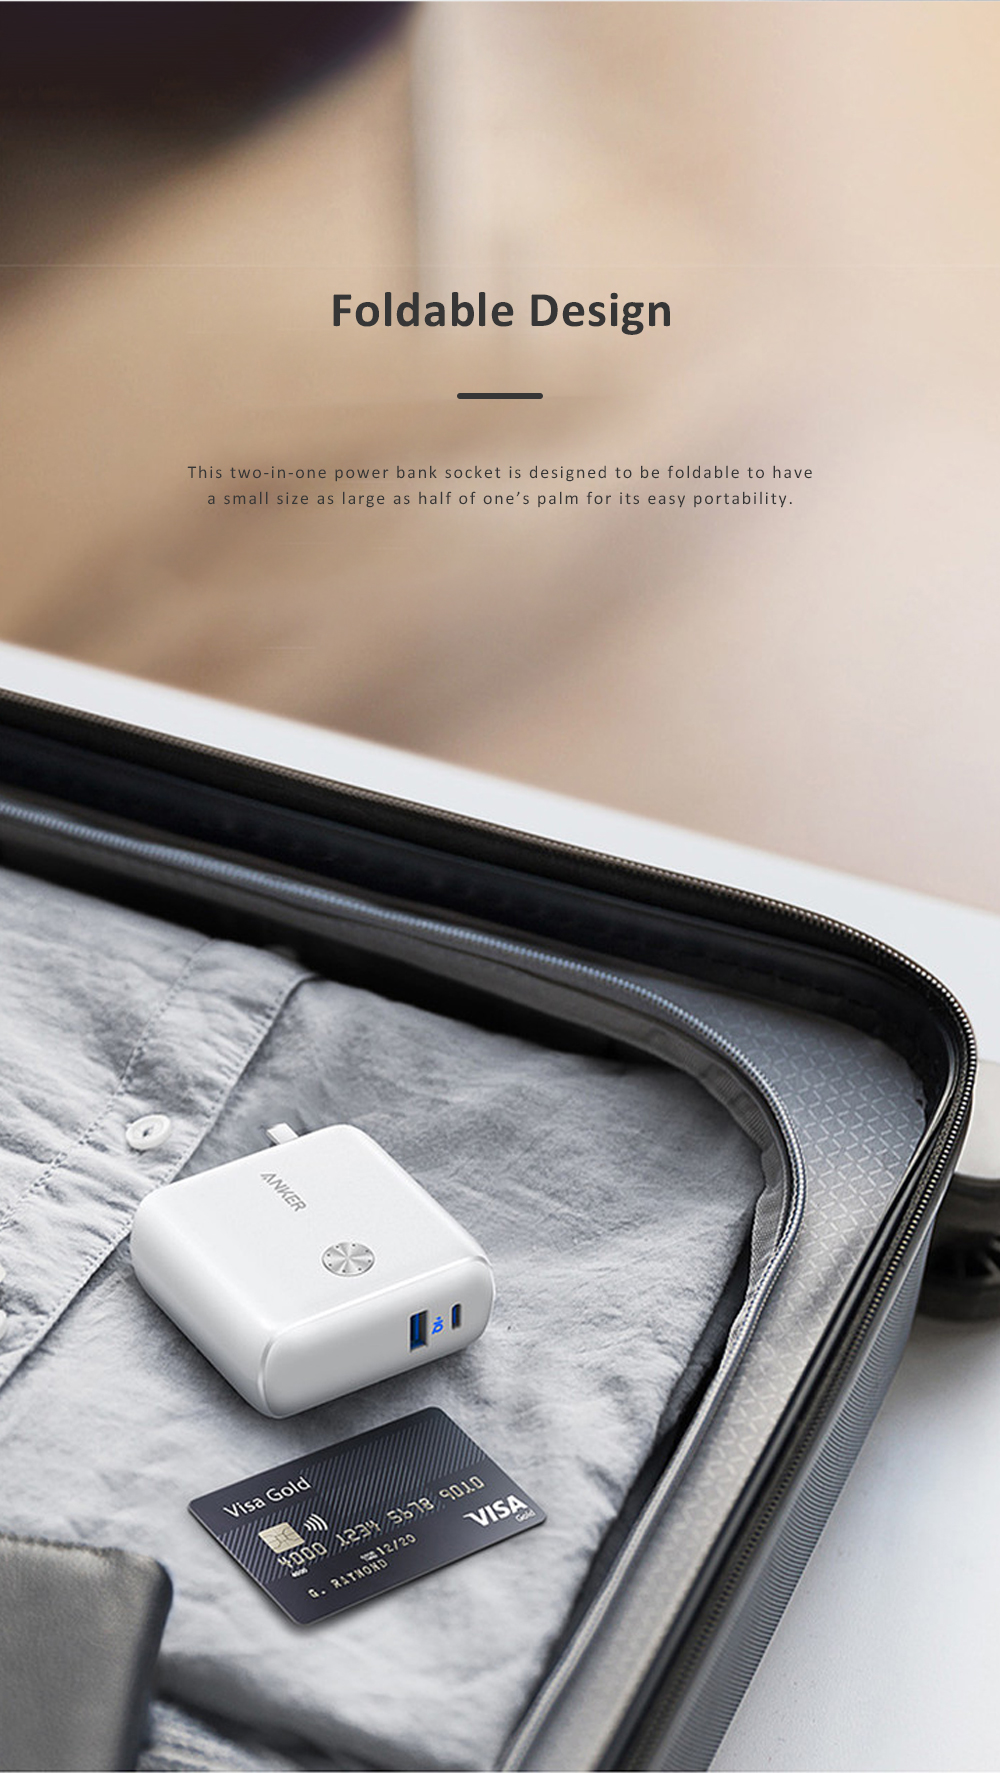 Anker 2 in 1 Power Bank Station Socket for Outdoors Travelling Quick Charge Portable Recharge Switch Power Socket 5